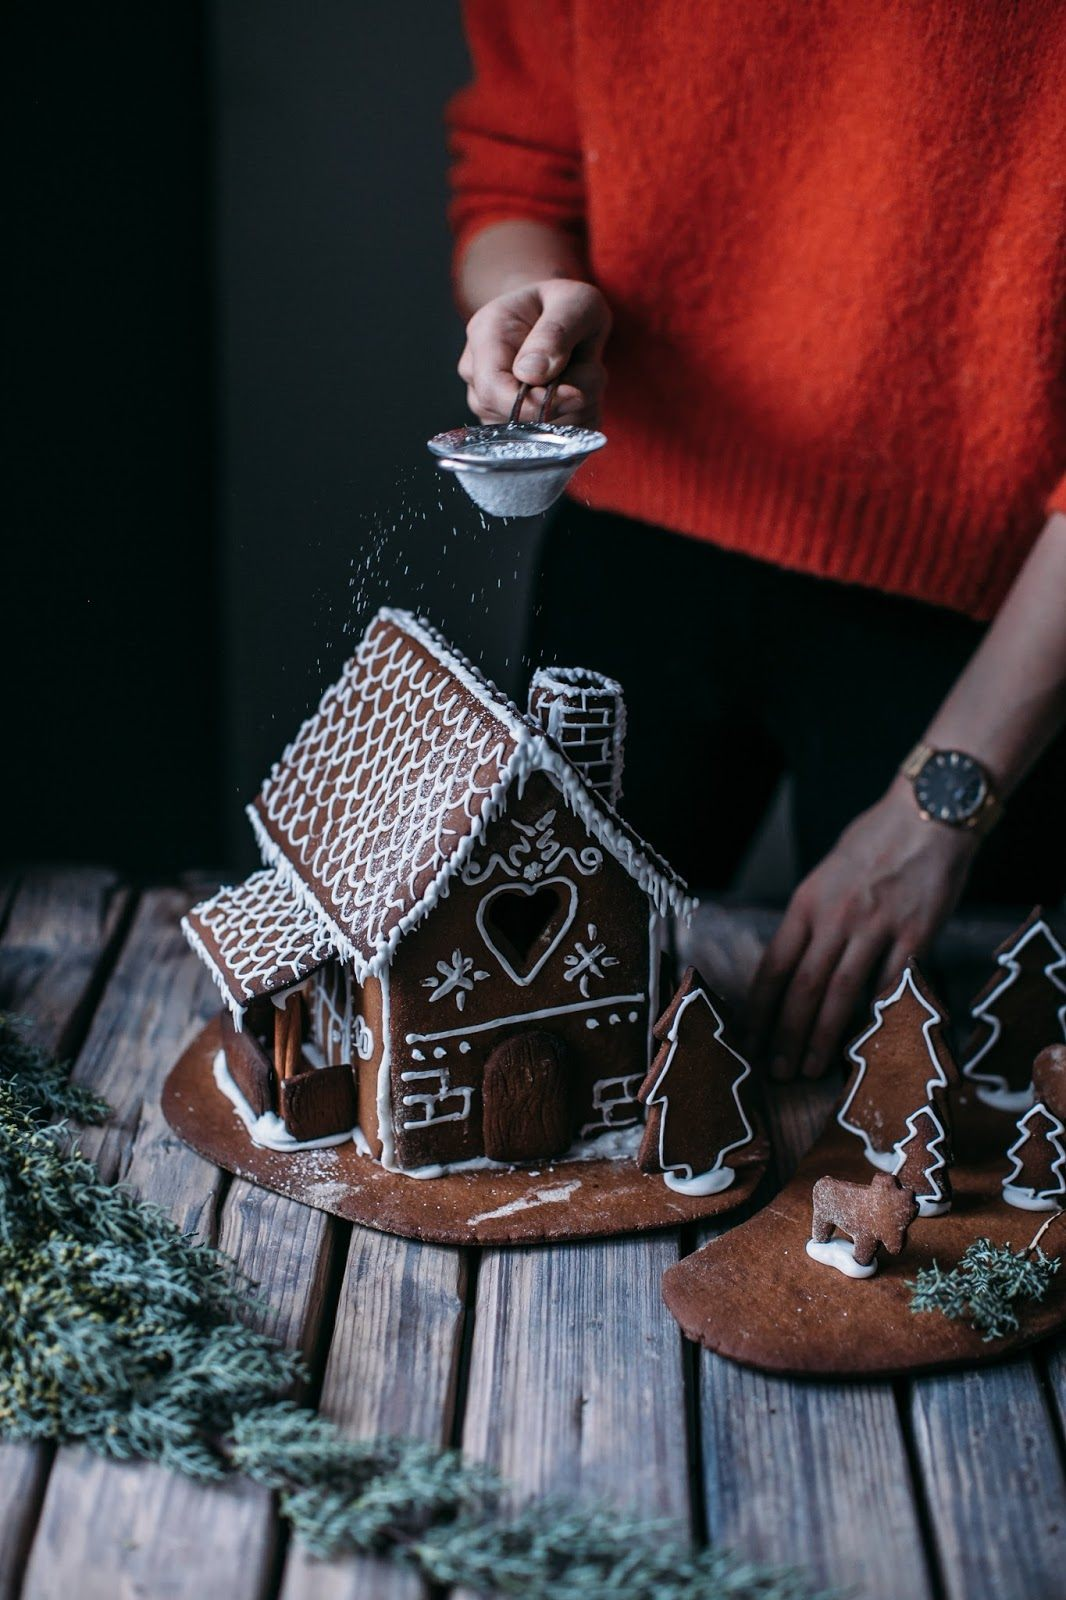 Gluten-free Ginger Bread House and a new Watch from Cluse